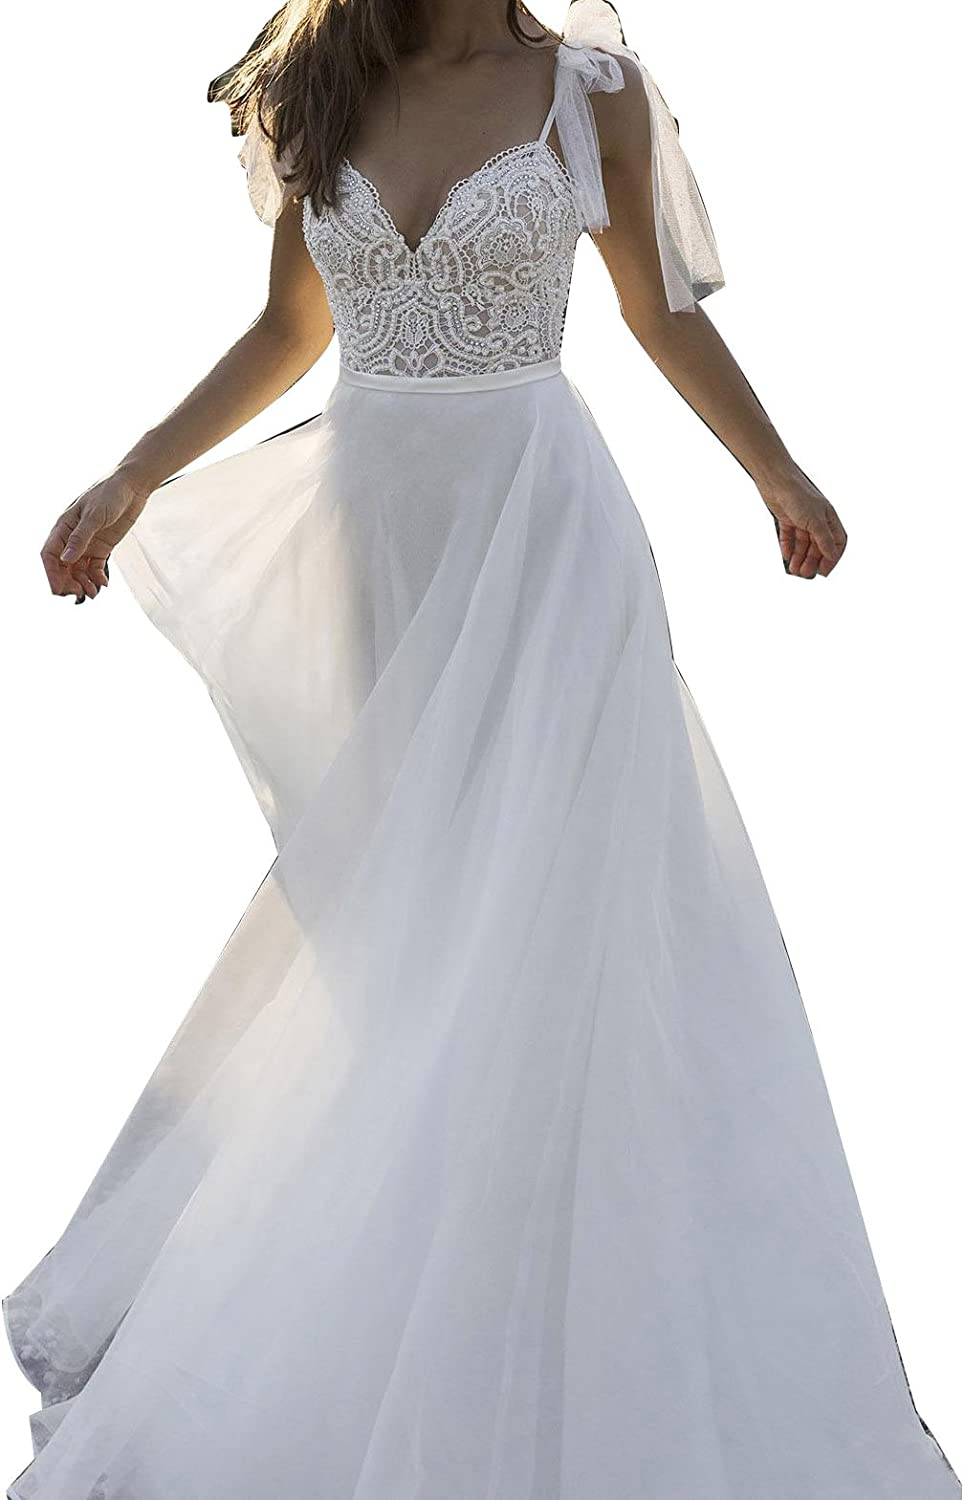 LISA.MOON Women's Spaghetti Backless Wedding Gown Lace Applique Beach Bridal Dress